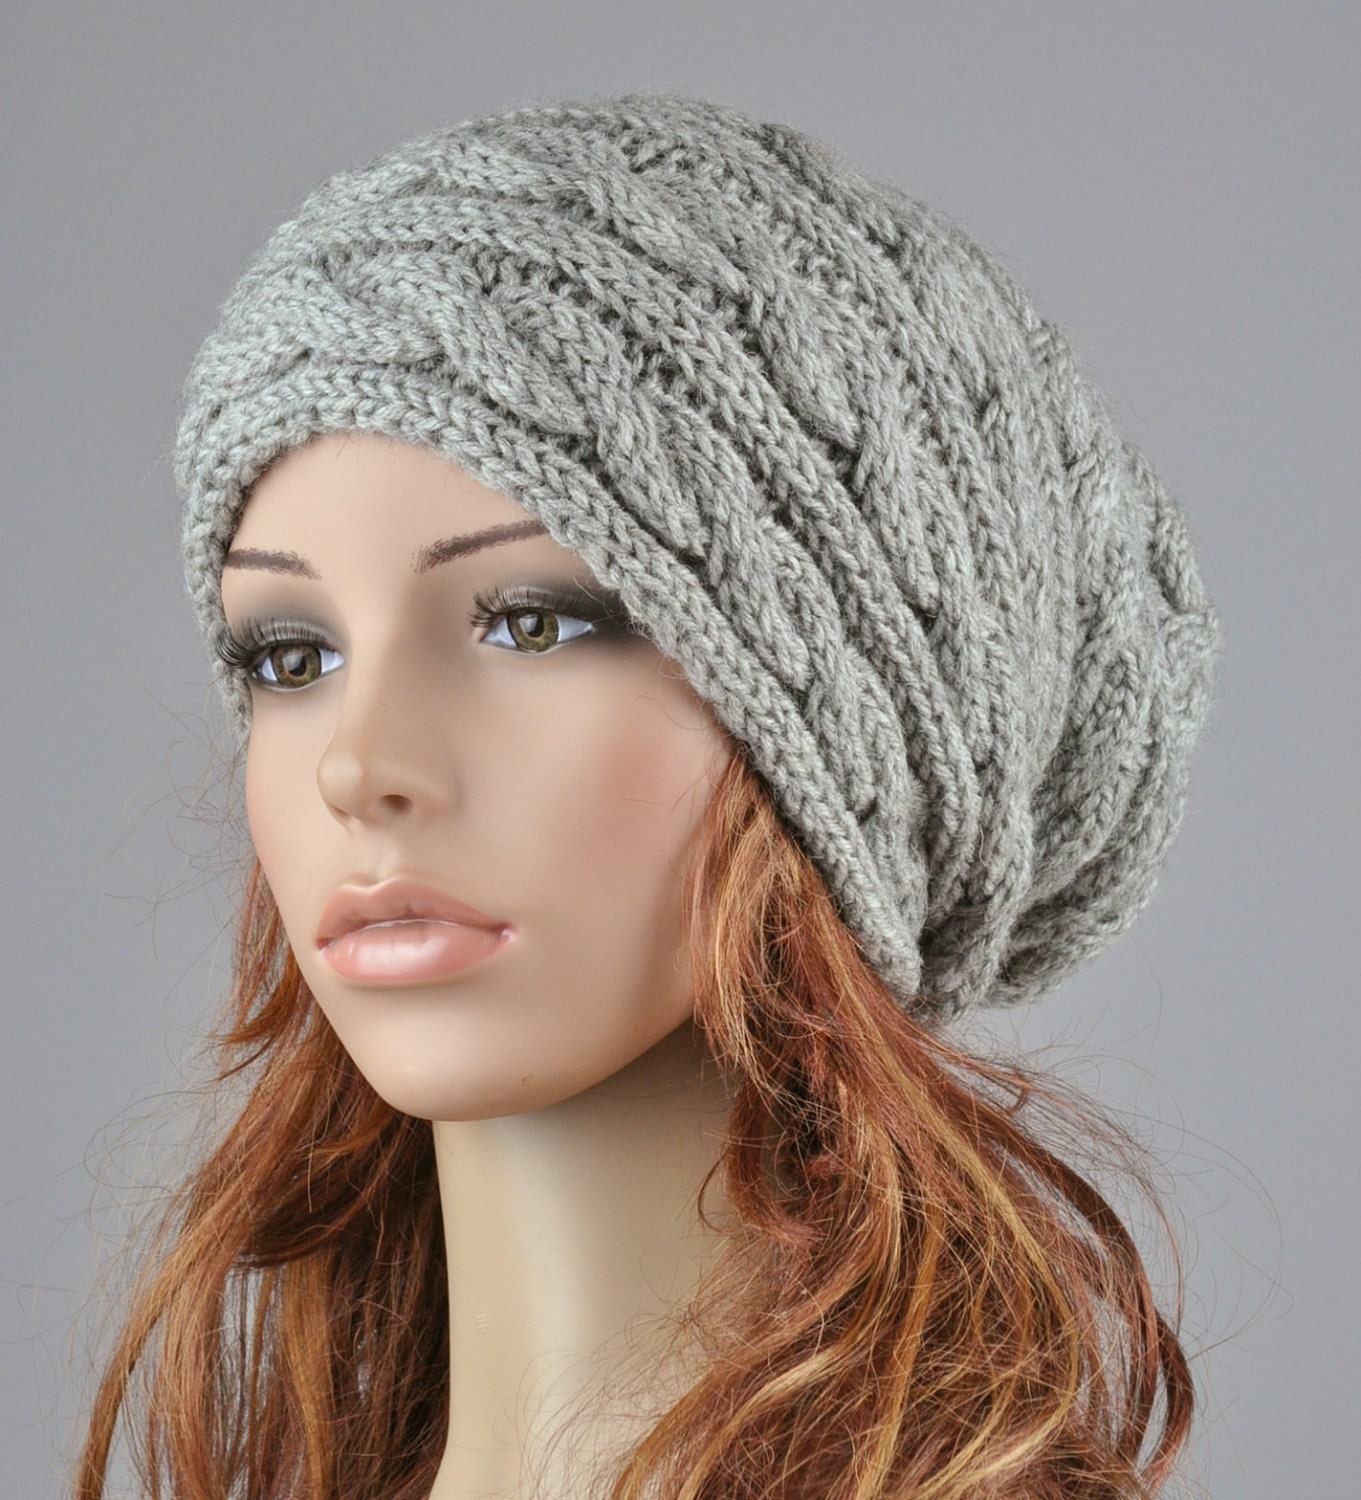 Knitting Patterns Free Slouchy Hat : Hand knit hat Grey hat slouchy hat cable pattern hat